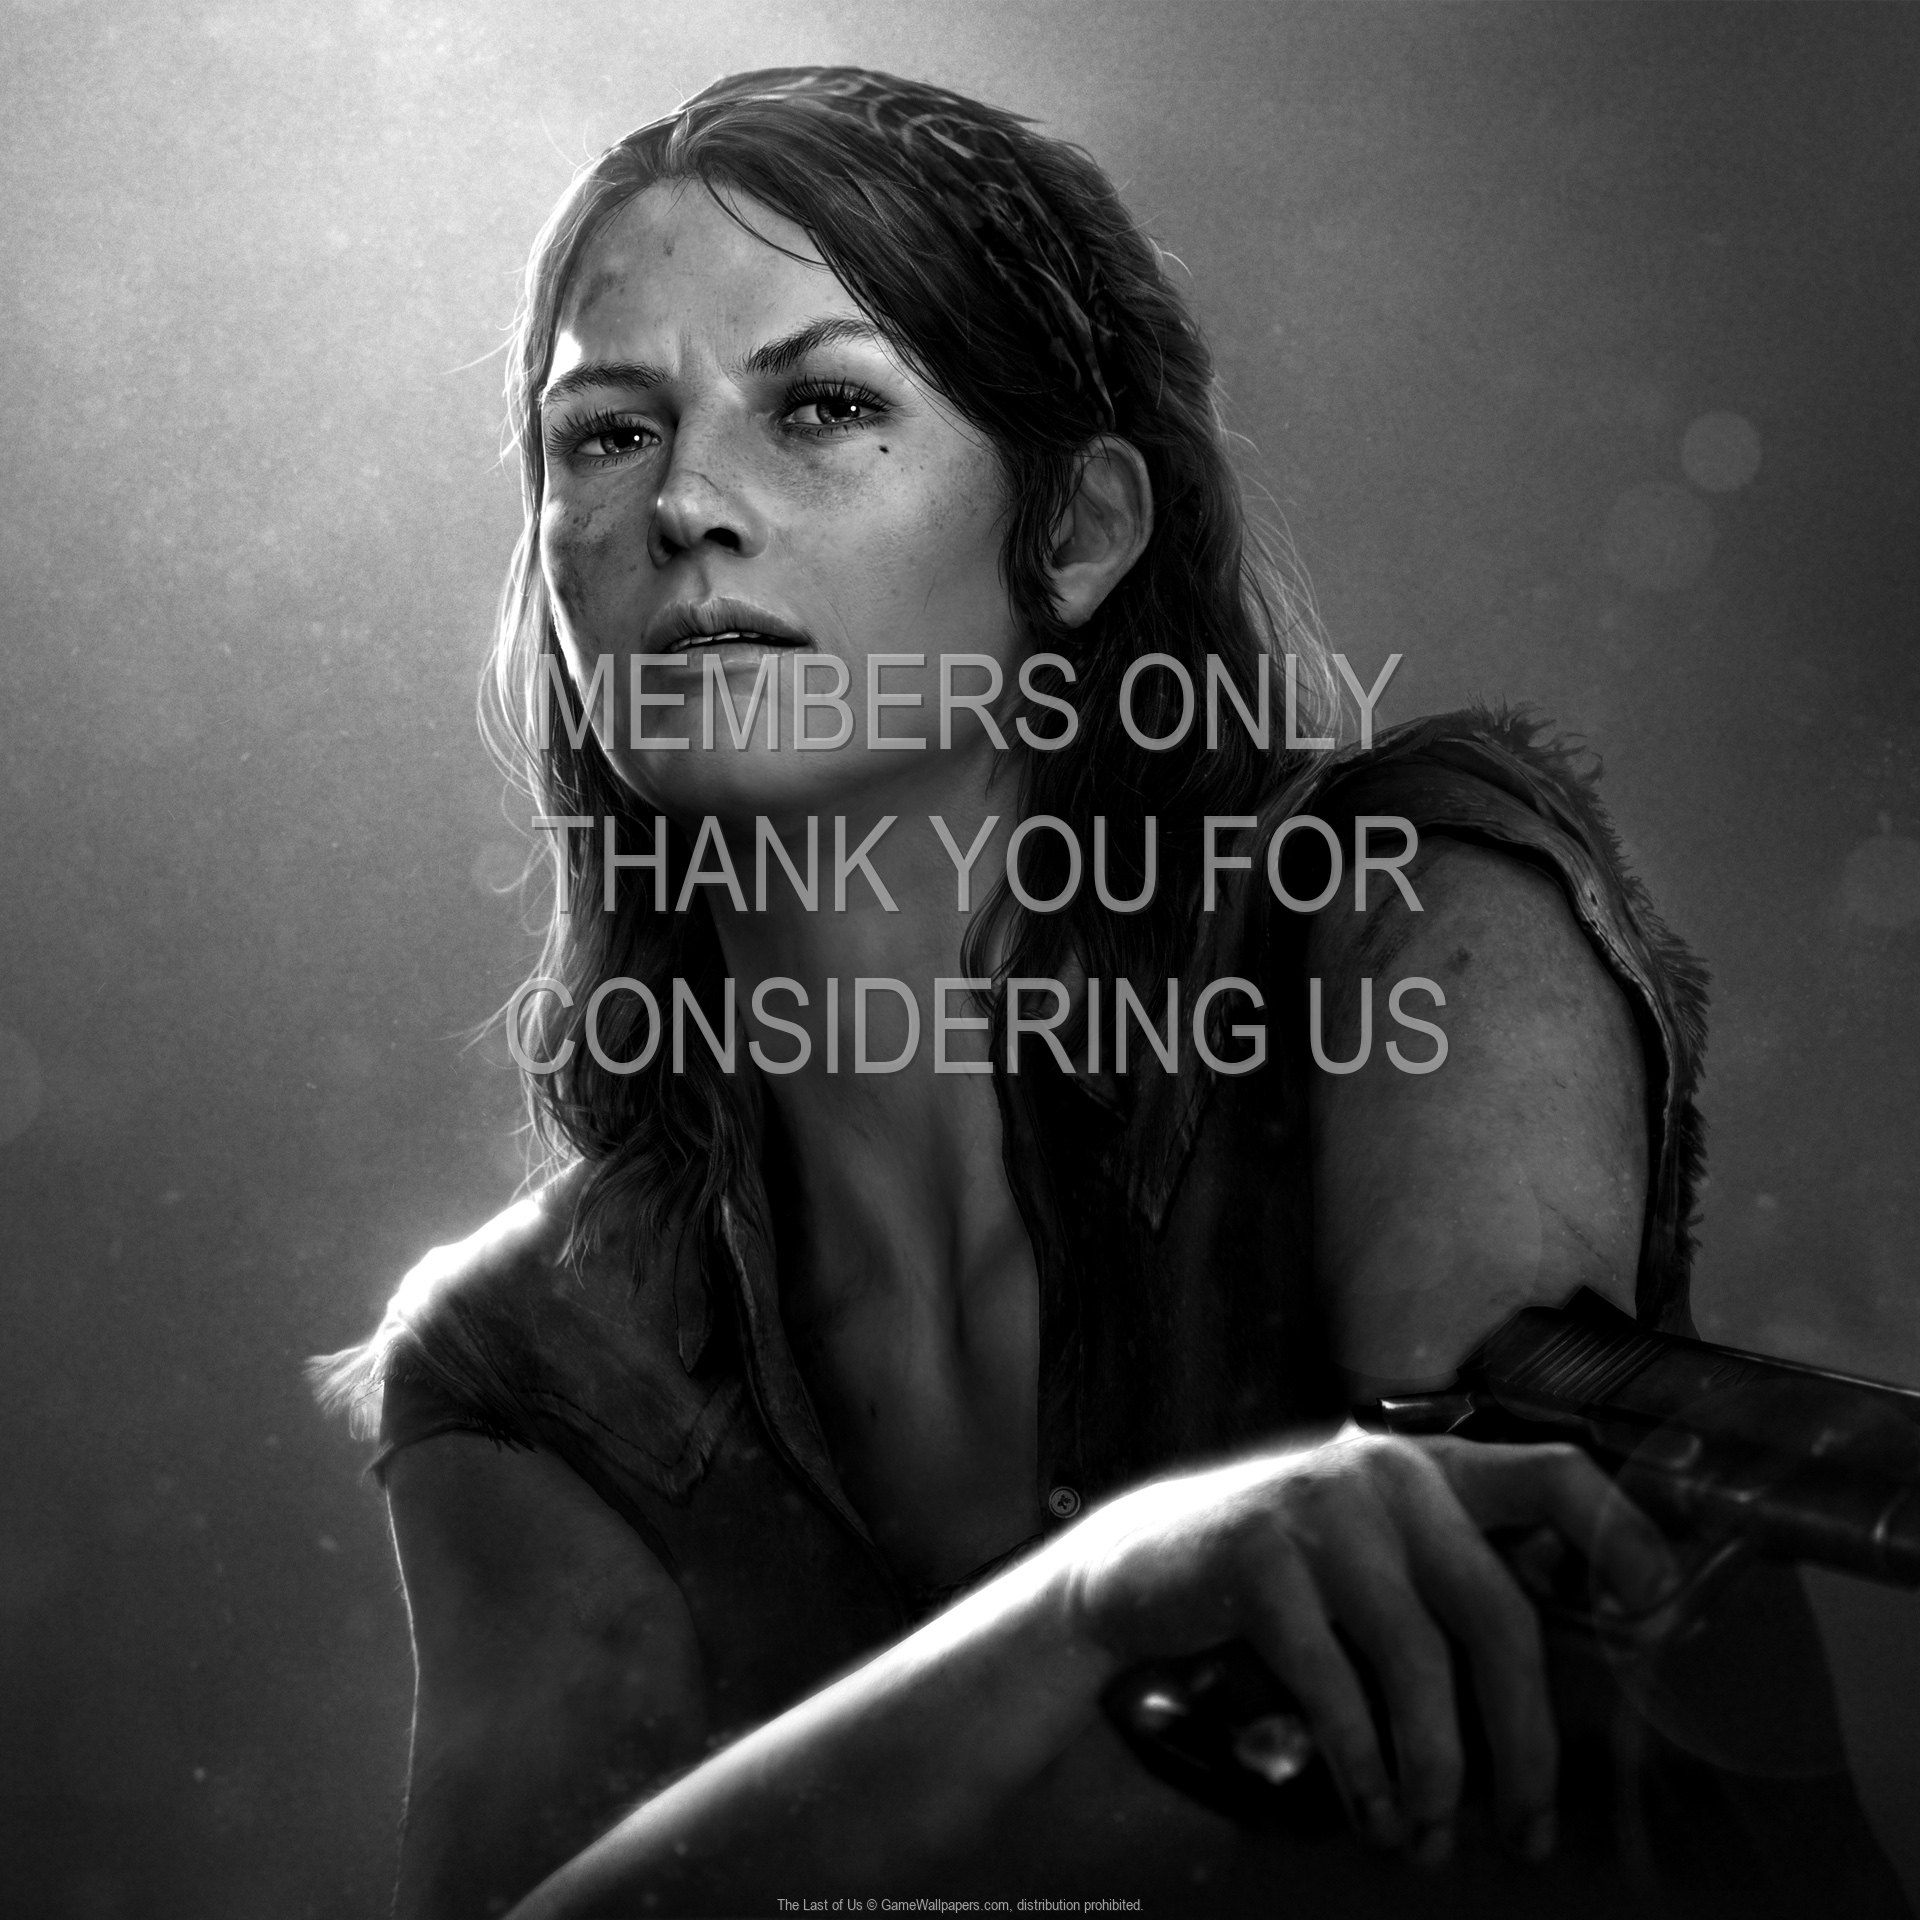 The Last of Us 1920x1080 Mobile wallpaper or background 14